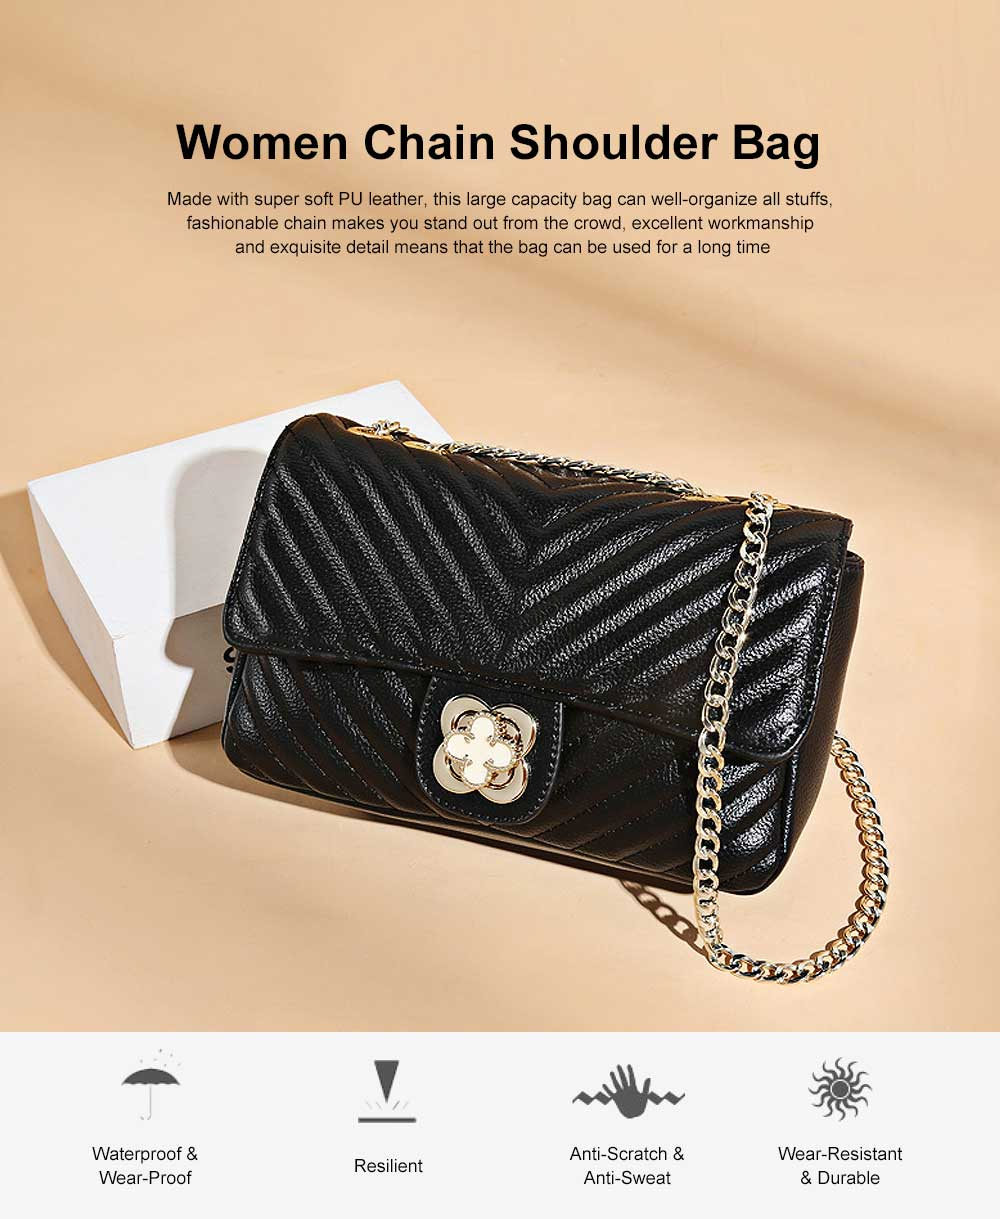 Women Fashion Shoulder Bag PU Leather Handbag Compact Crossbody Bag with Chain, Black 0